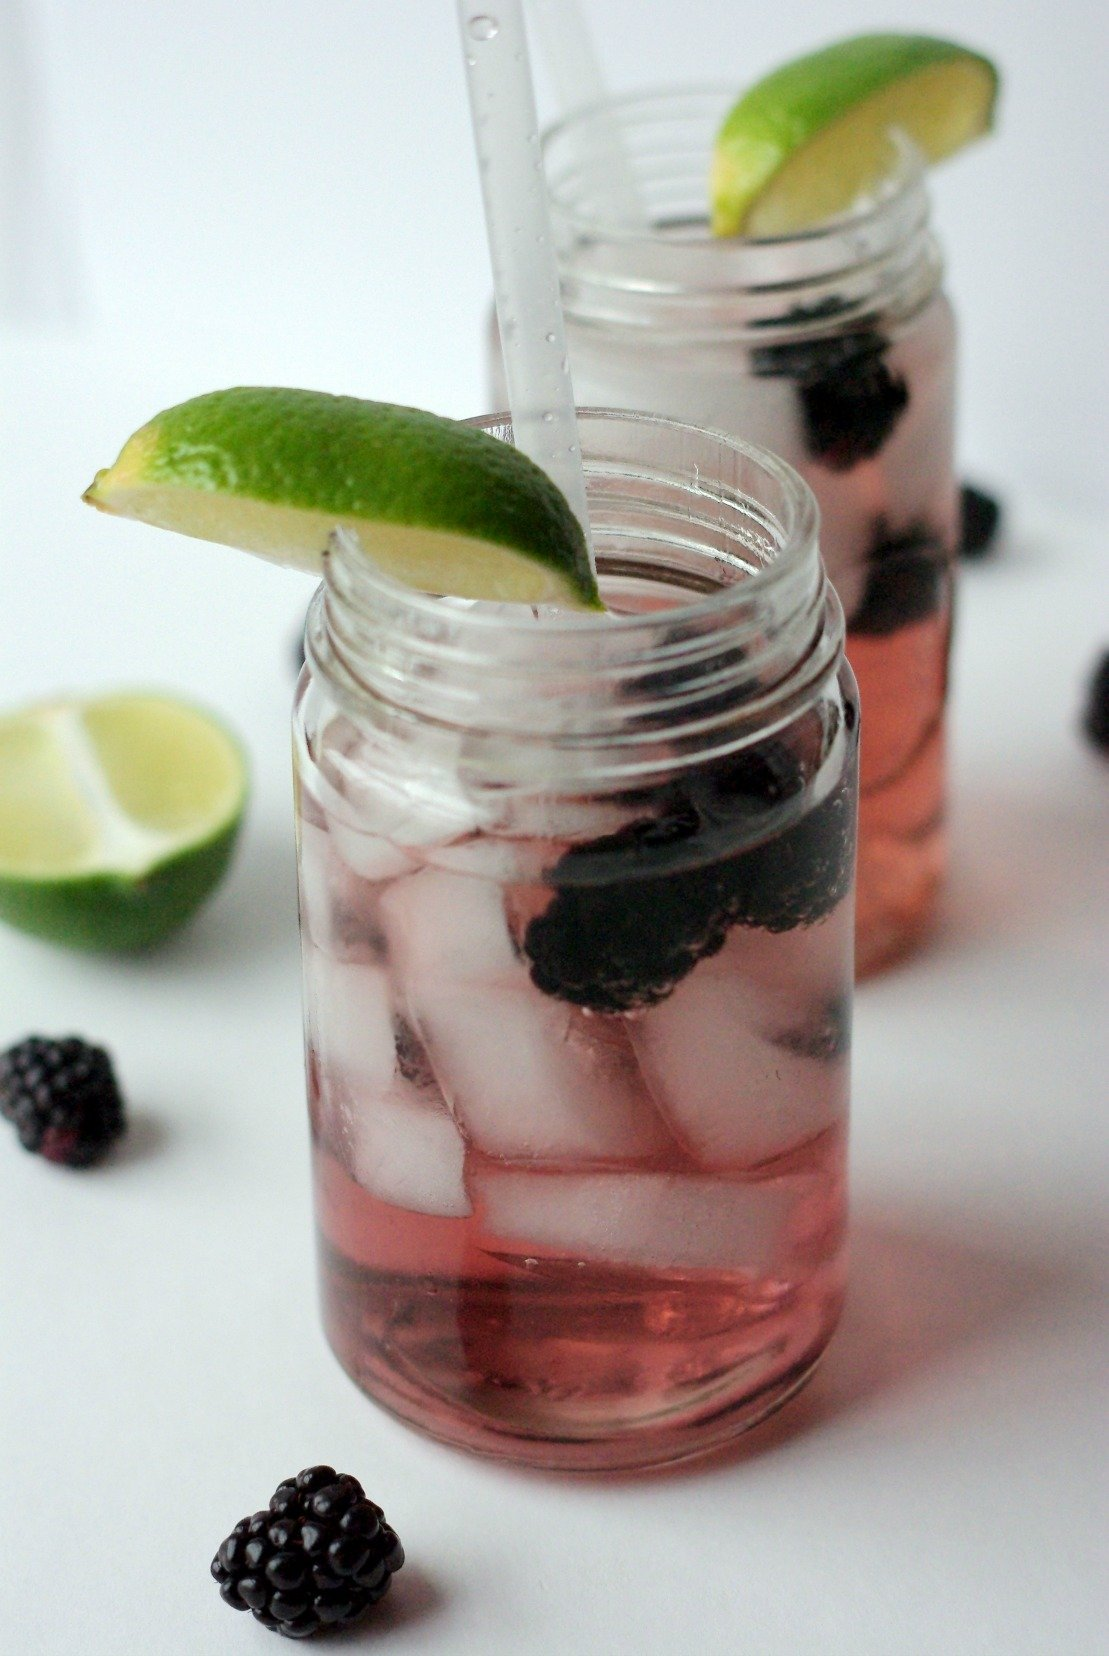 Canada Dry Blackberry Ginger Ale and Captain Morgan Spiced Rum | Spiced rum swirled with crisp, bubbly blackberry-flavored ginger ale.